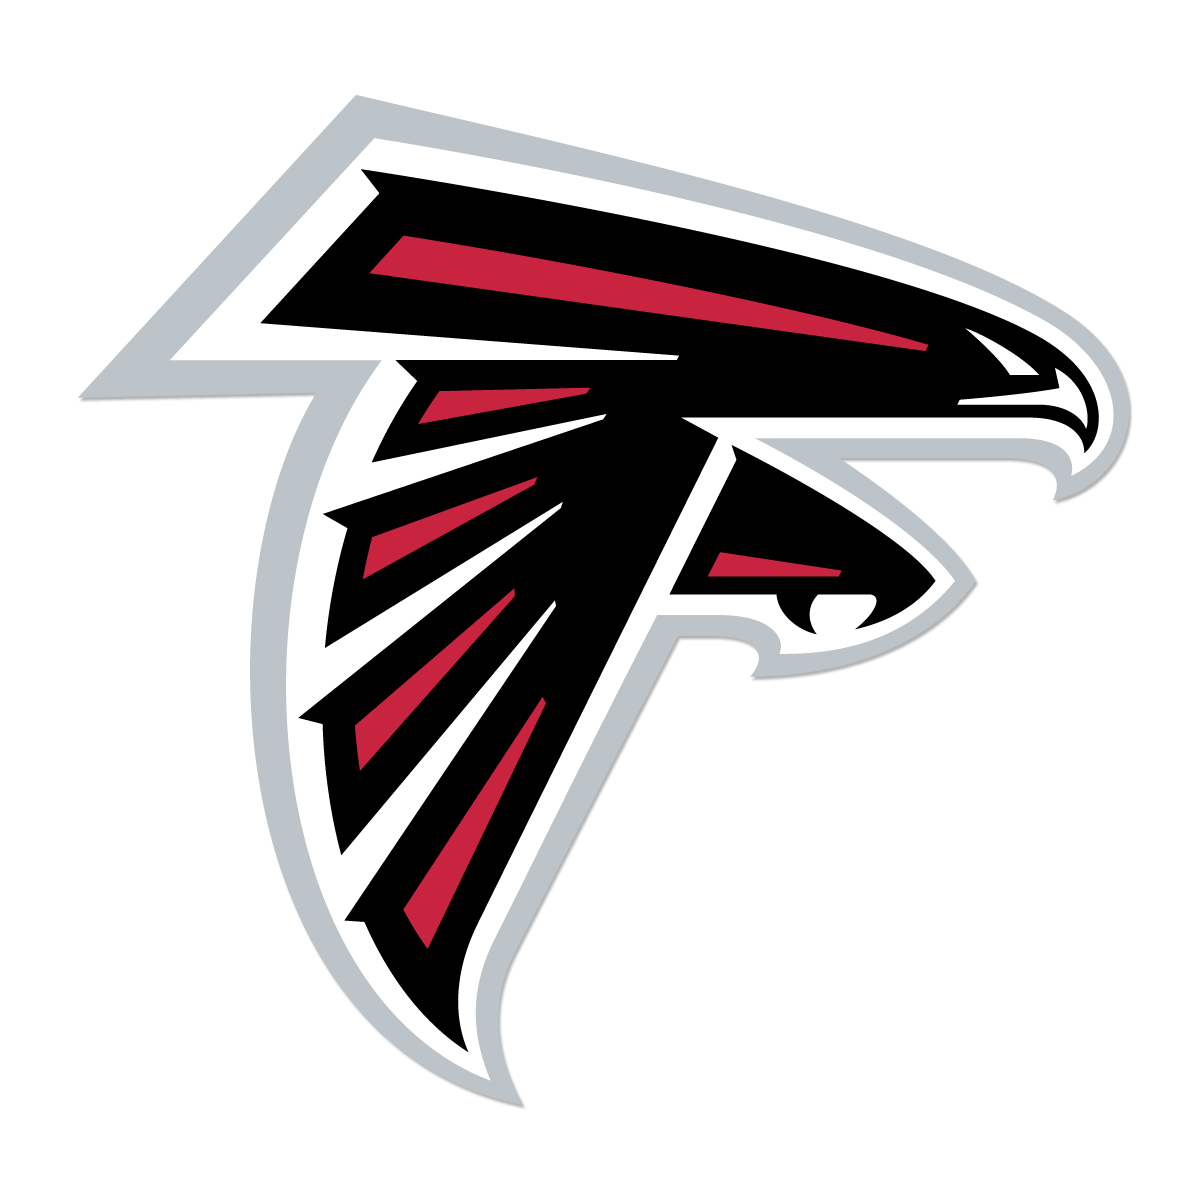 Atlanta Falcons NFL logo